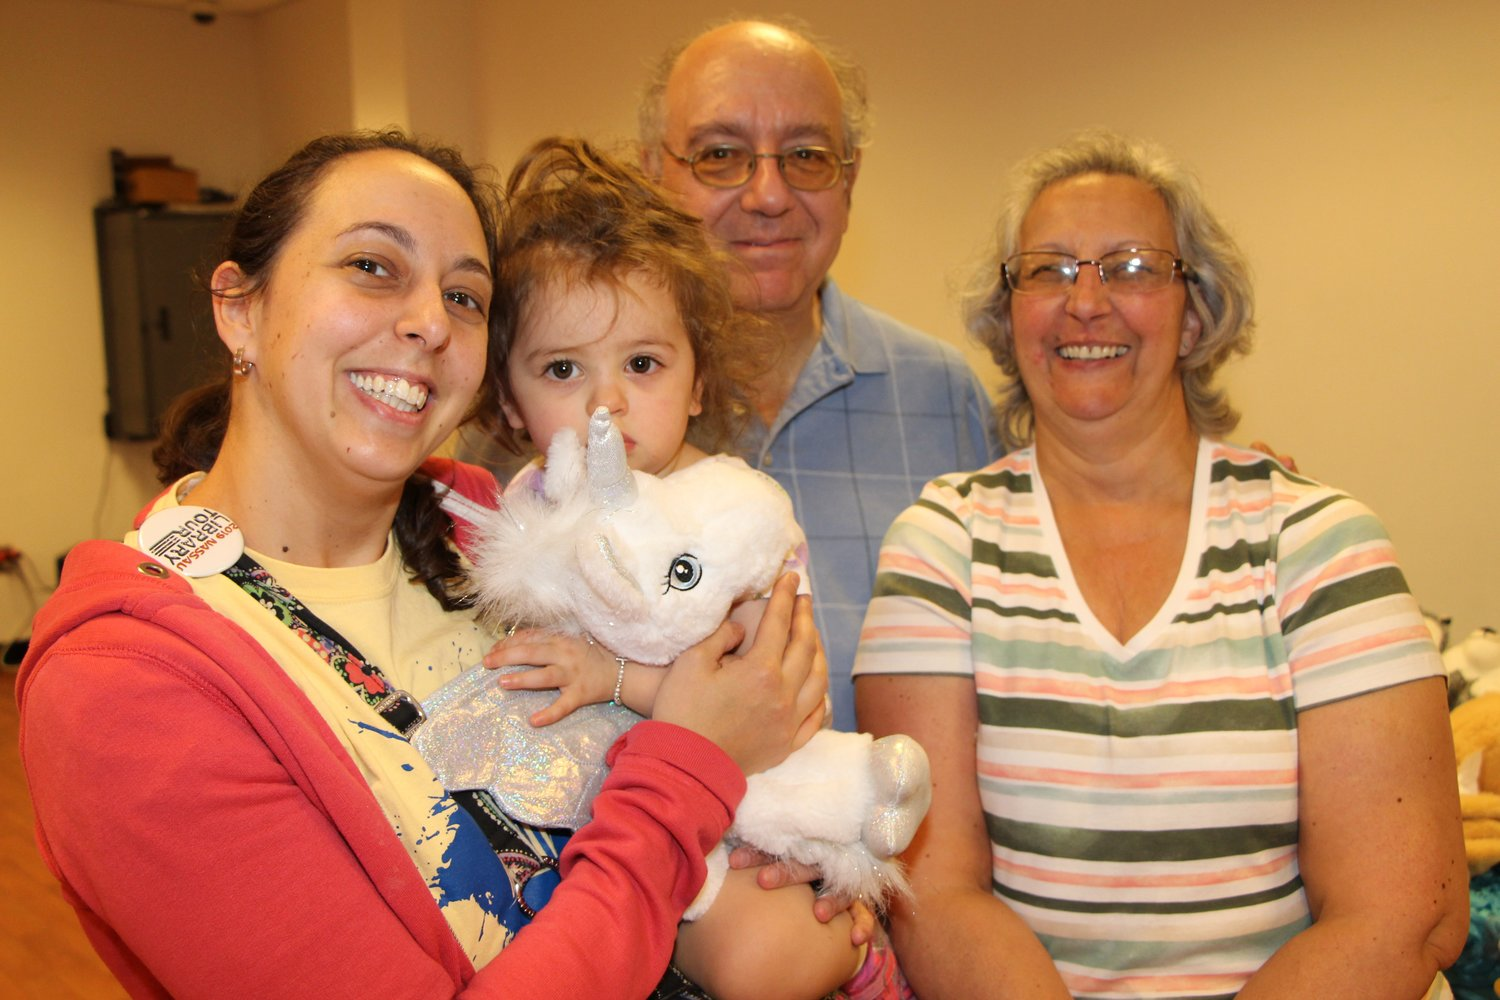 Emily Trezza, left, brought her one-year-old daughter, Aurora, and her grandparents Danny and Janet Trezza to celebrate Grandparents Day.